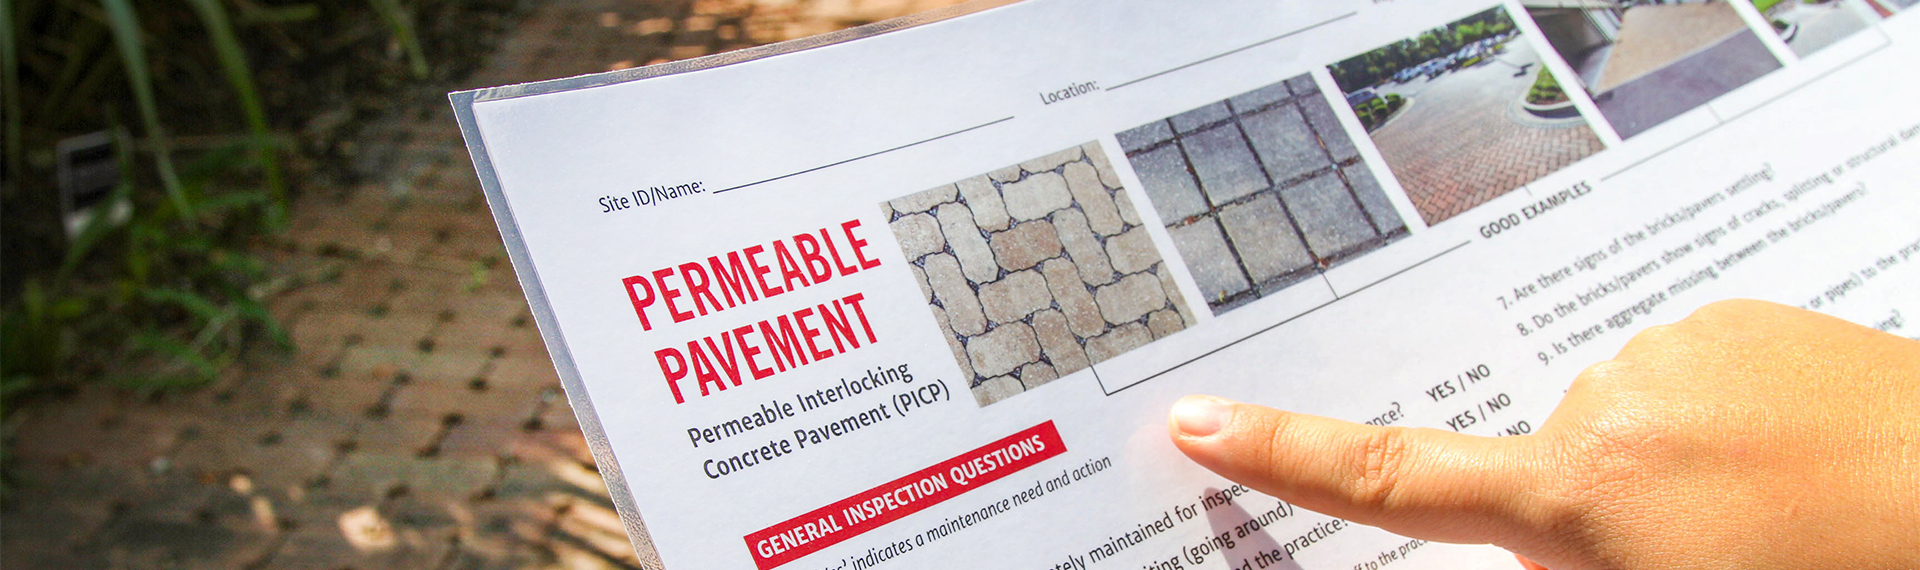 A hand points at a laminated sheet with permeable pavement options